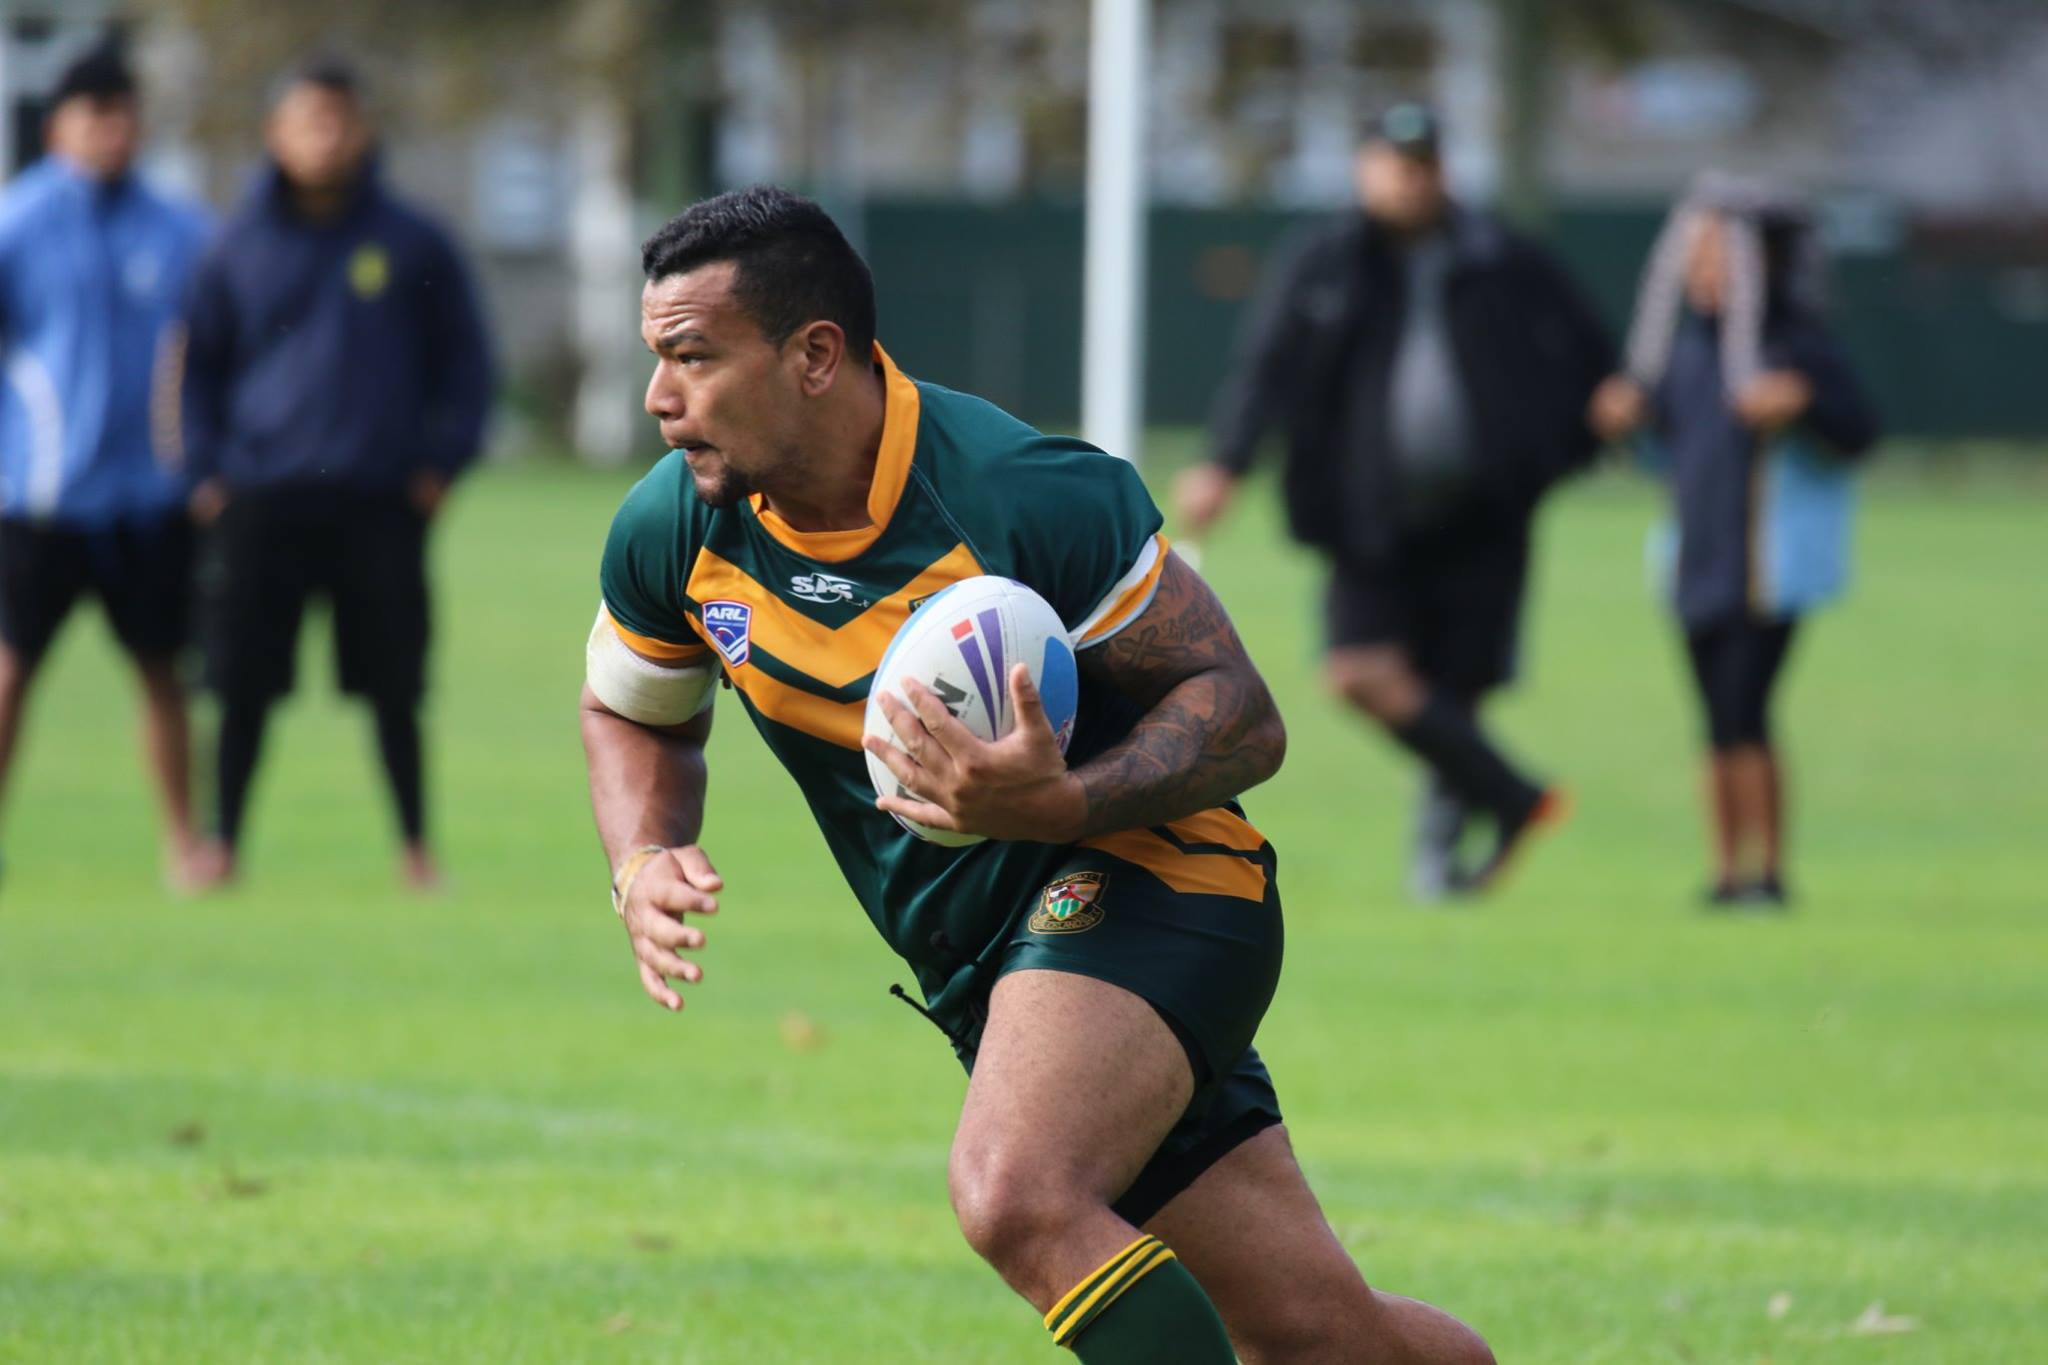 Howick & Marist to play for inaugural David Mu Cup, Northcote & Richmond attempt to avoid relegation